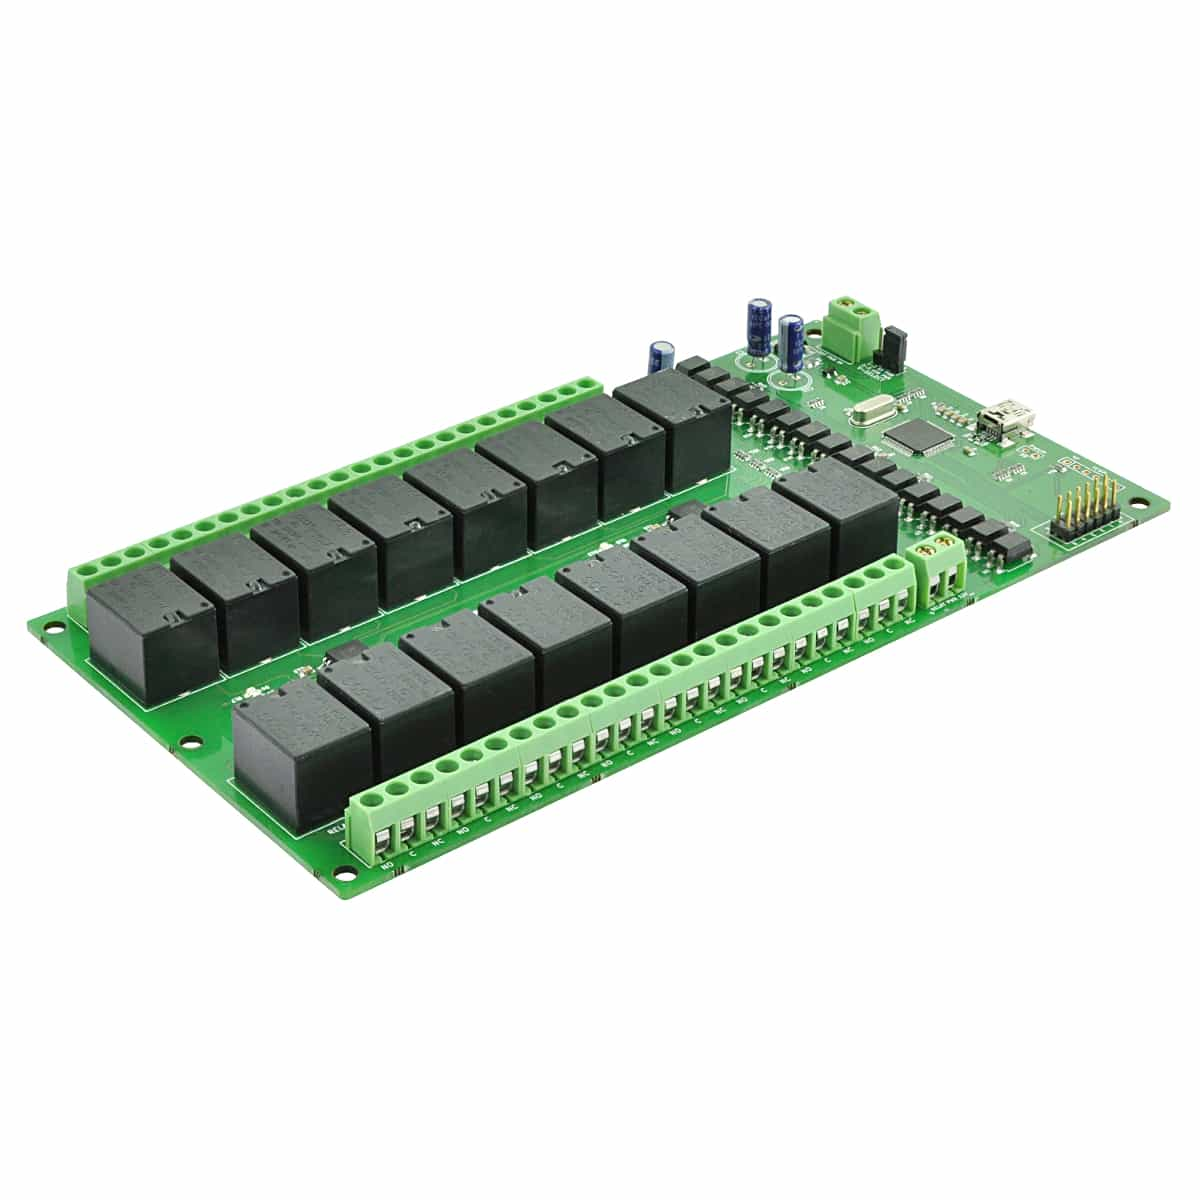 16 Channel Usb Relay Module With Gpio And Inputs Numato Lab Spdt 12v 5a